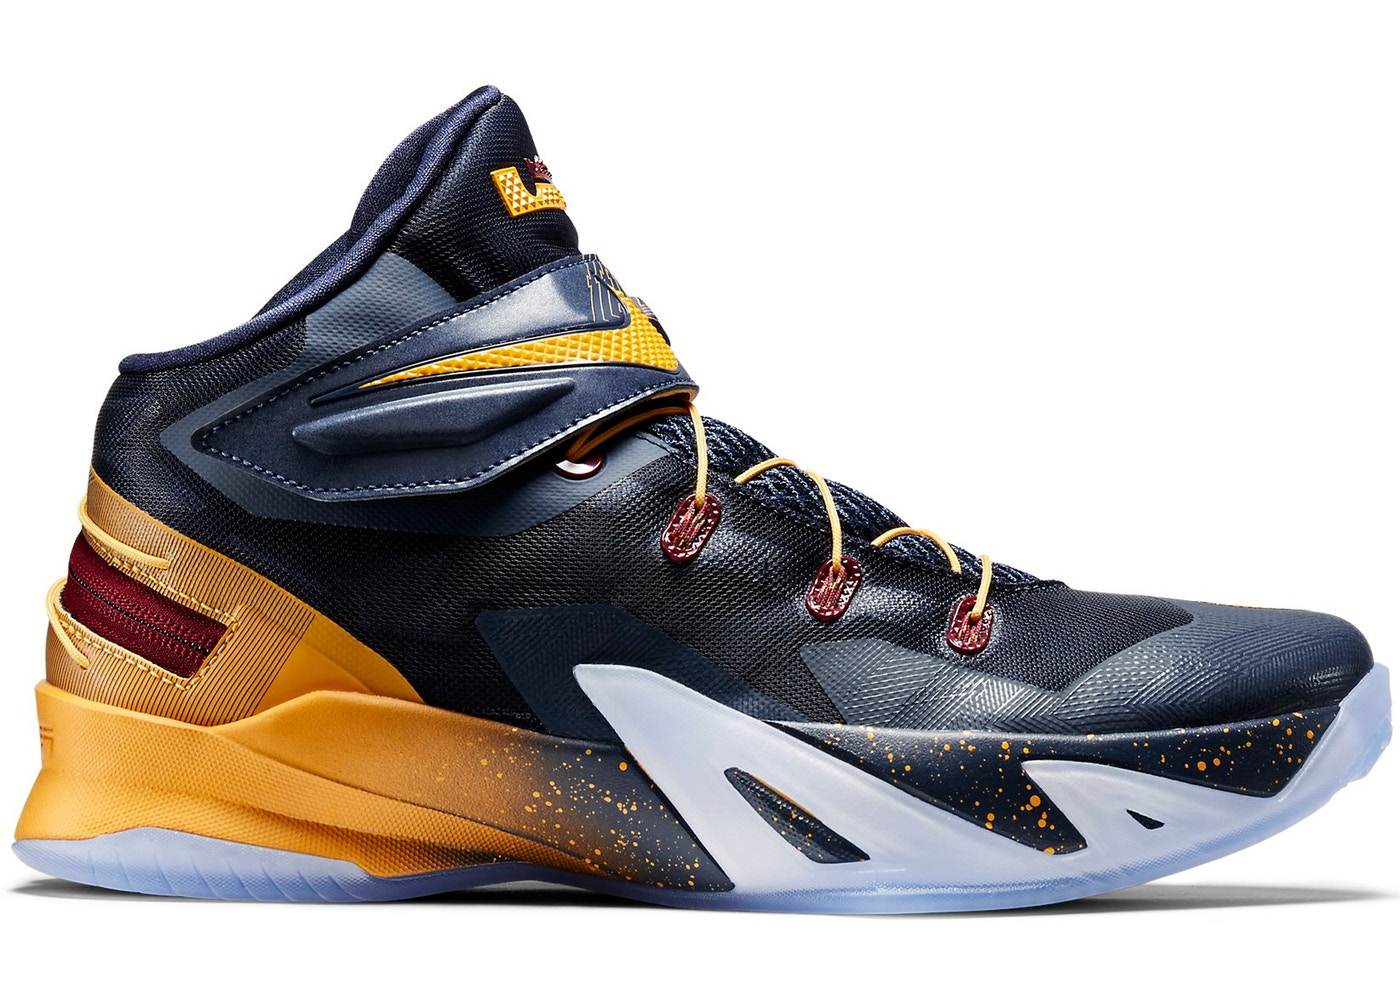 a39eaaffe5b2 Sell. or Ask. Size 9. View All Bids. LeBron Zoom Soldier 8 Flyease Cavs